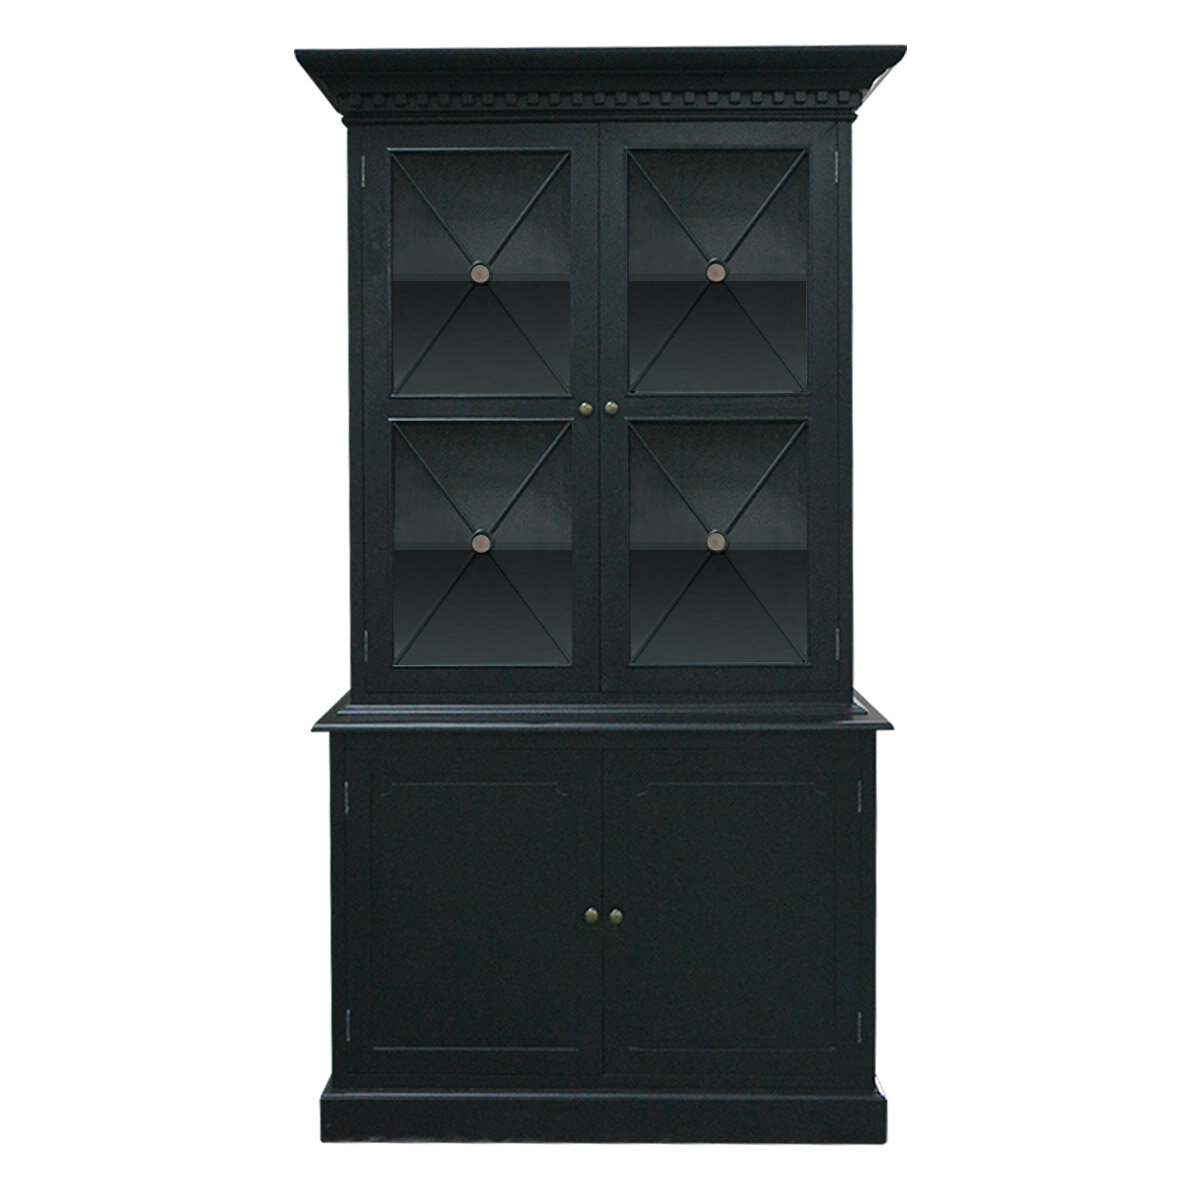 Picture of: Hamptons Criss Cross Glass Door Black Hutch Buffet Cabinet Chest Sideboard Ebay